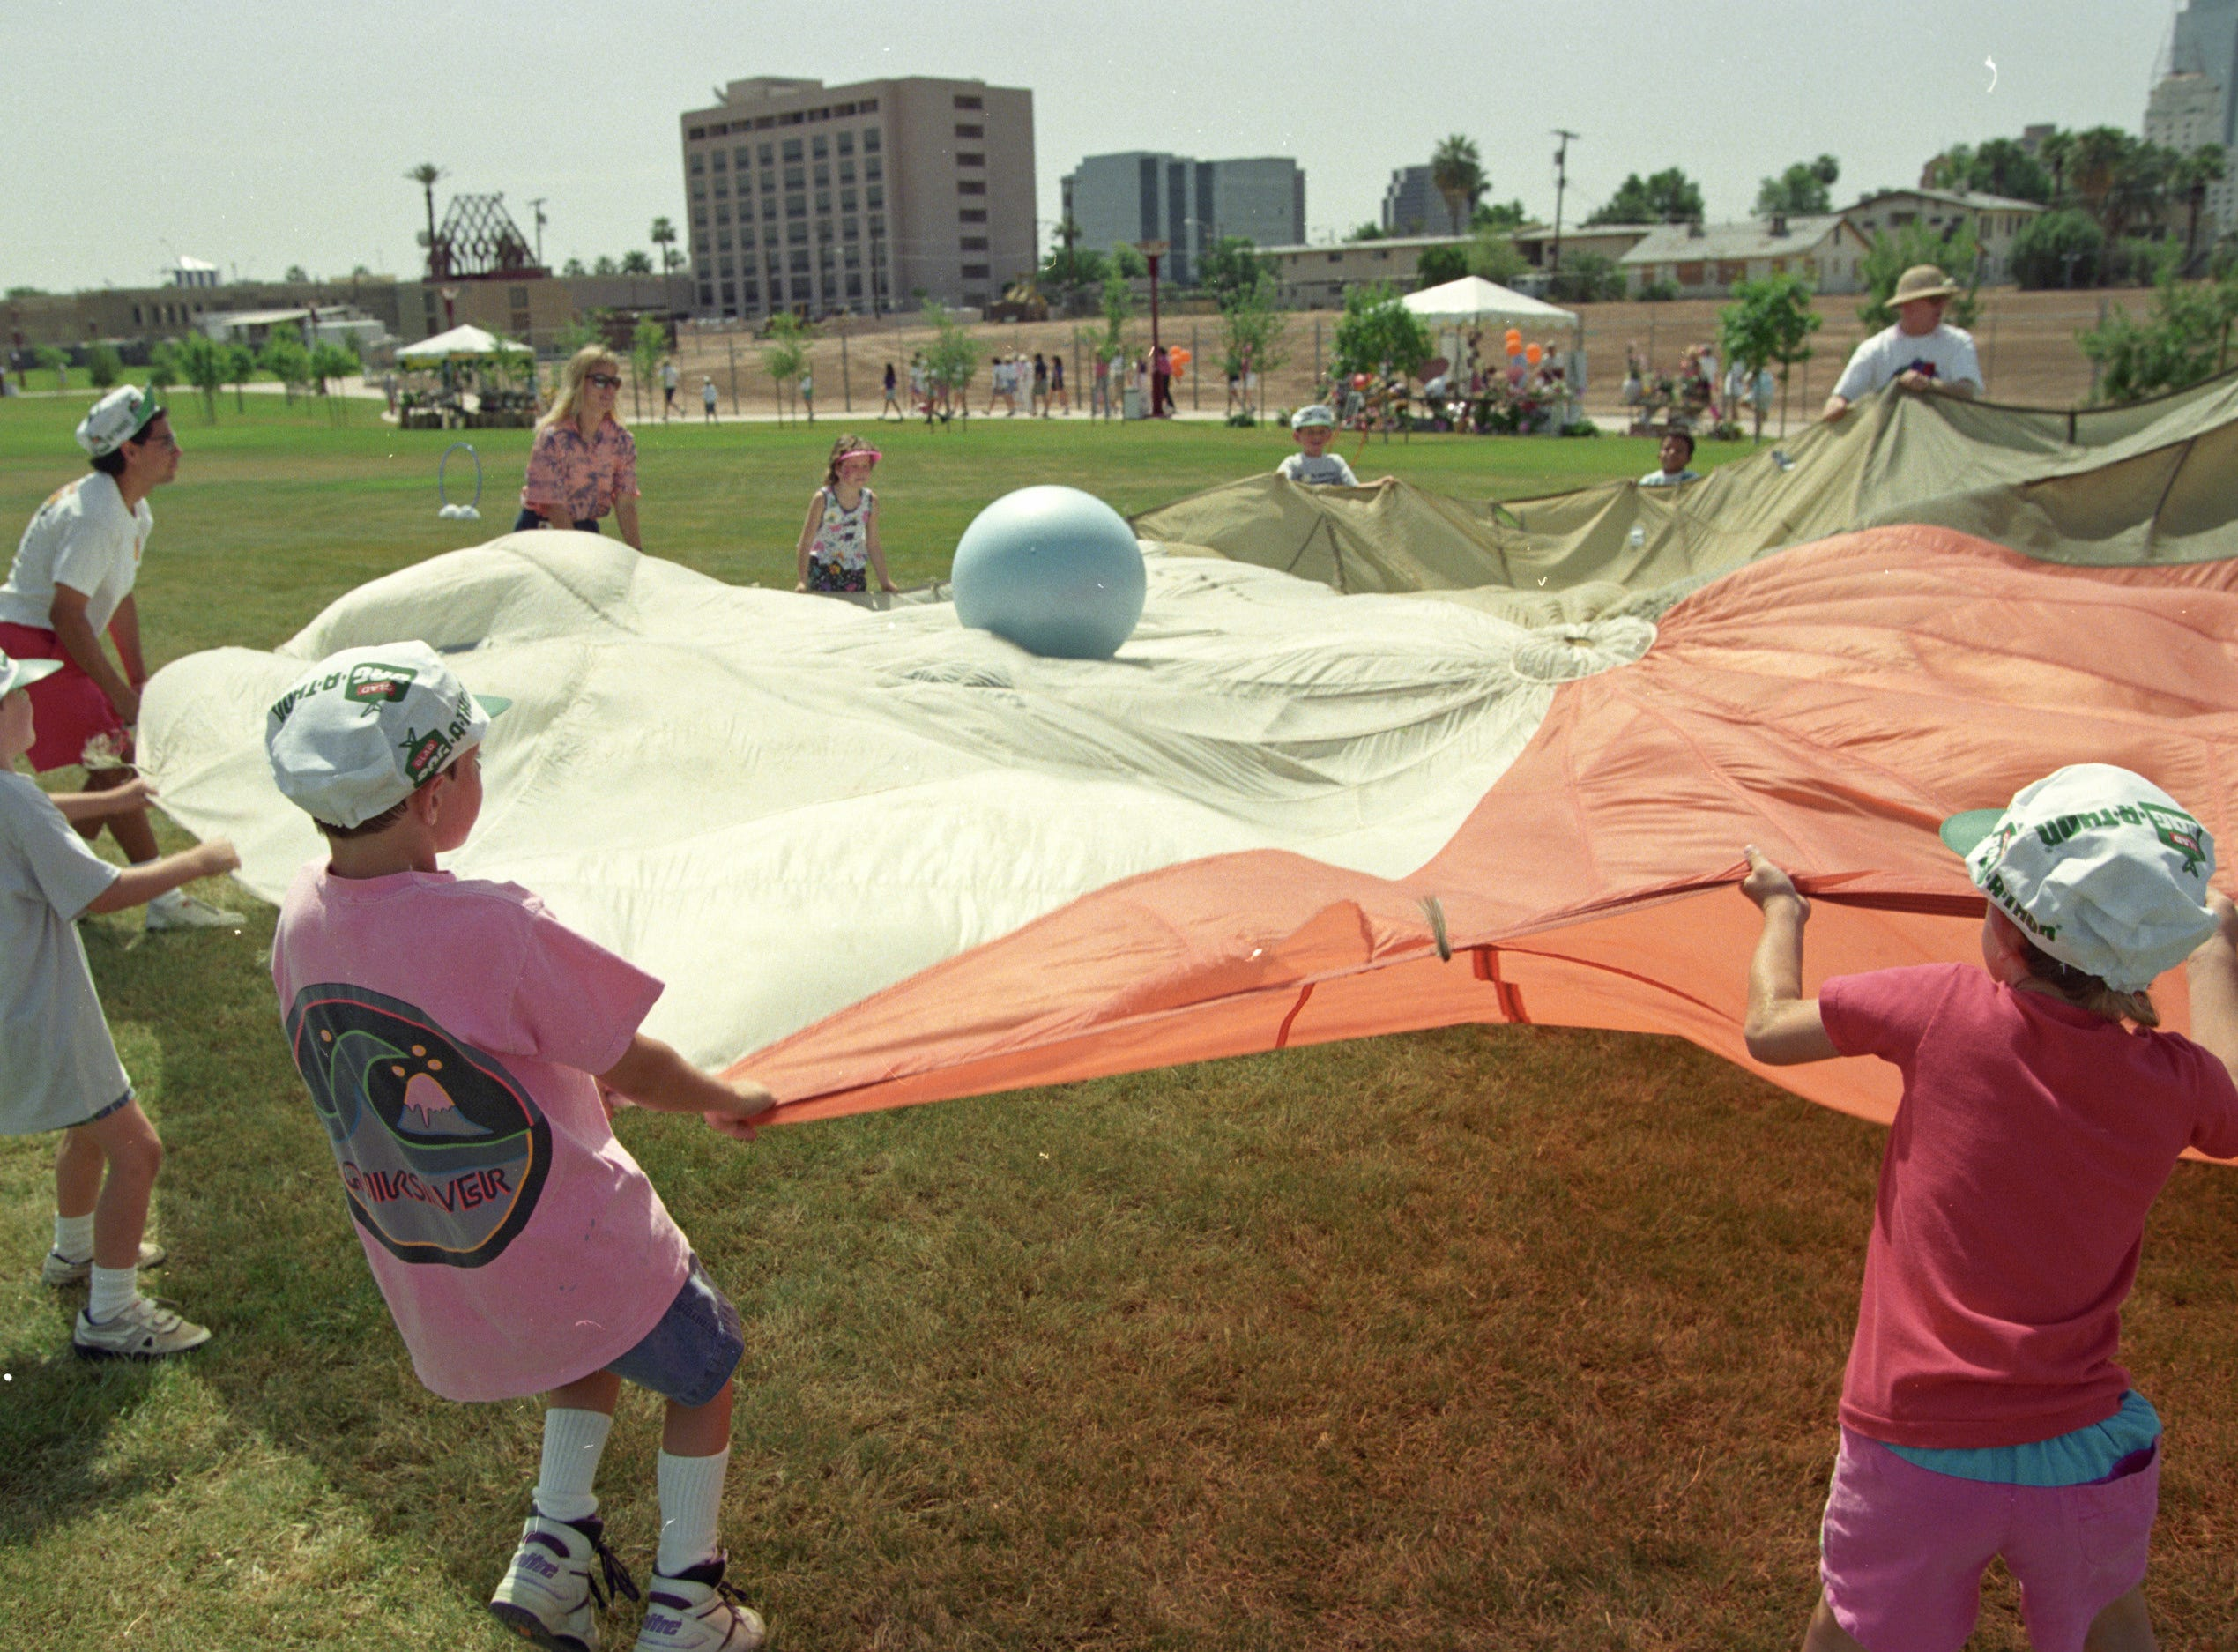 Children and adults play during the grand opening in spring 1992 of Margaret T. Hance Park in central Phoenix.